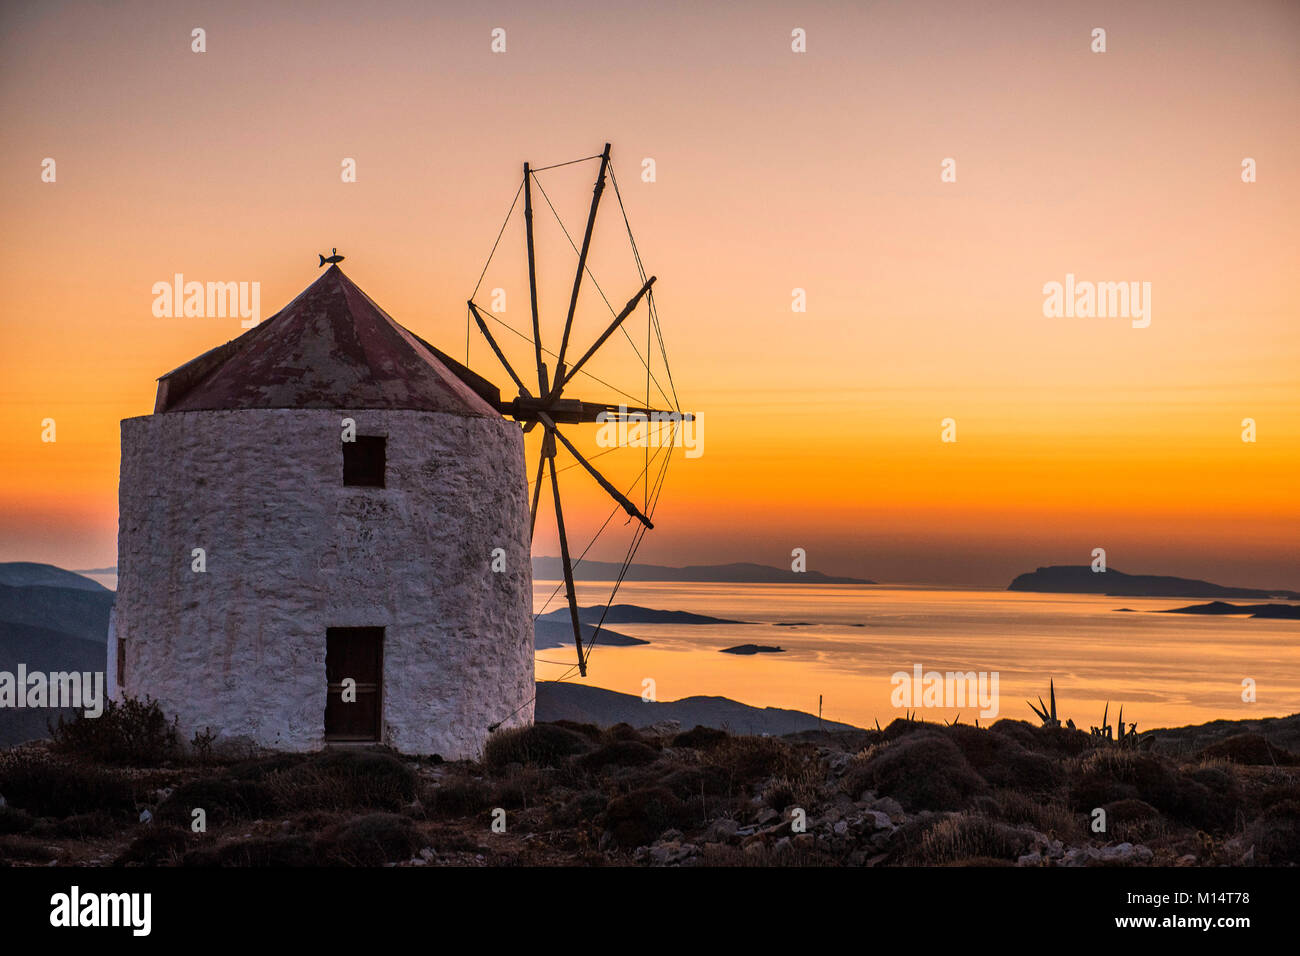 Amorgos, Chora of Amorgos. Cyclades Island, Greece. A windmill on the highest hill of the island with the intense - Stock Image